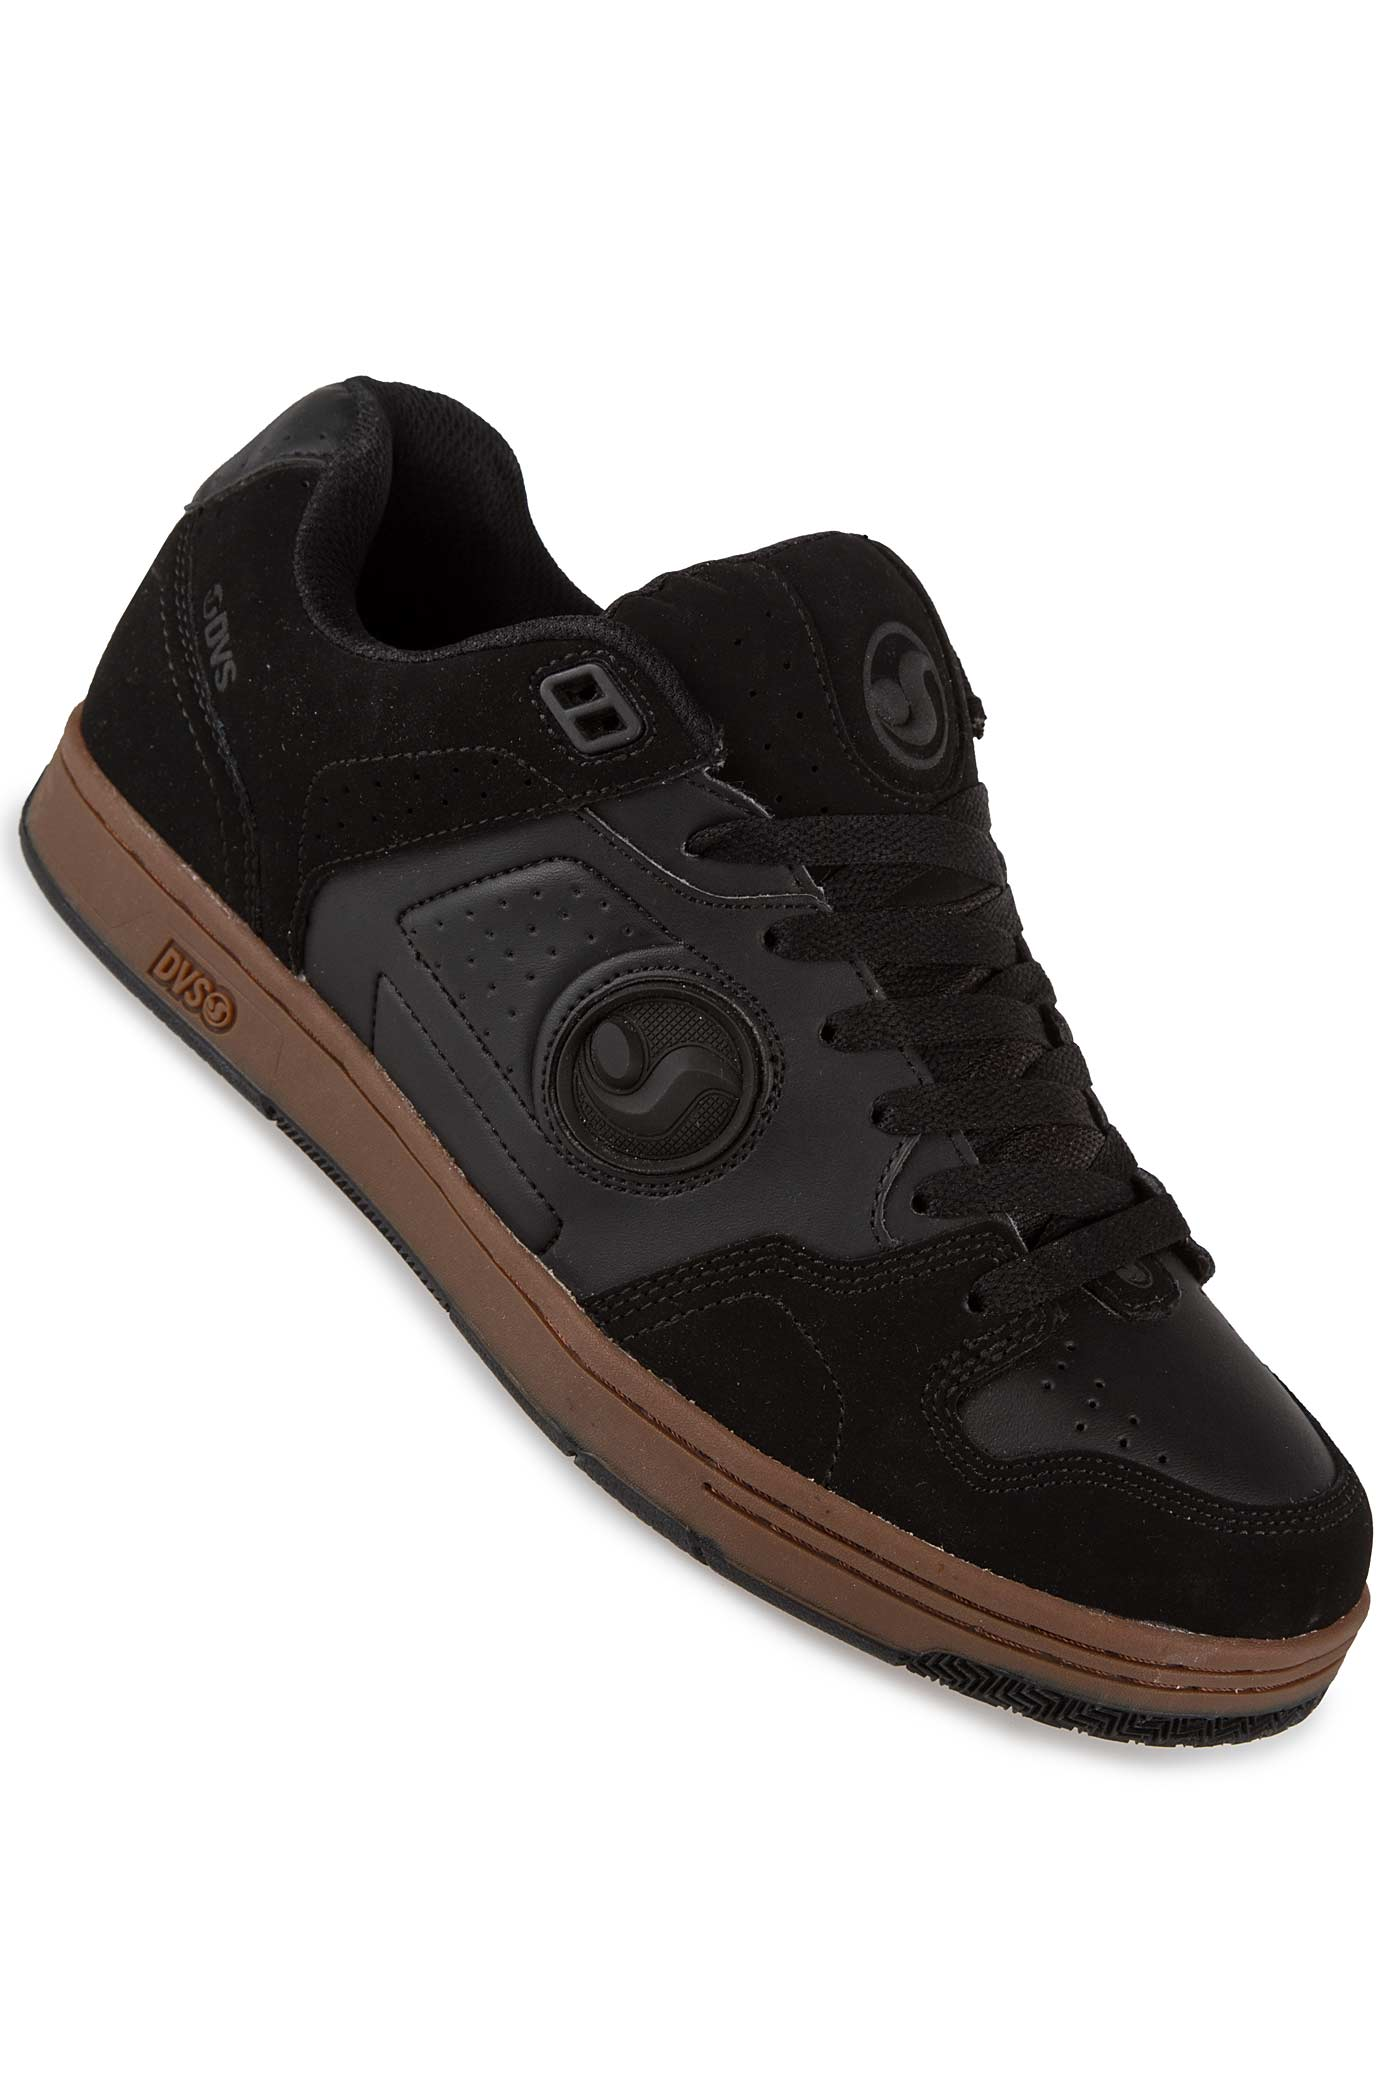 Dvs Shoes For Sale Philippines